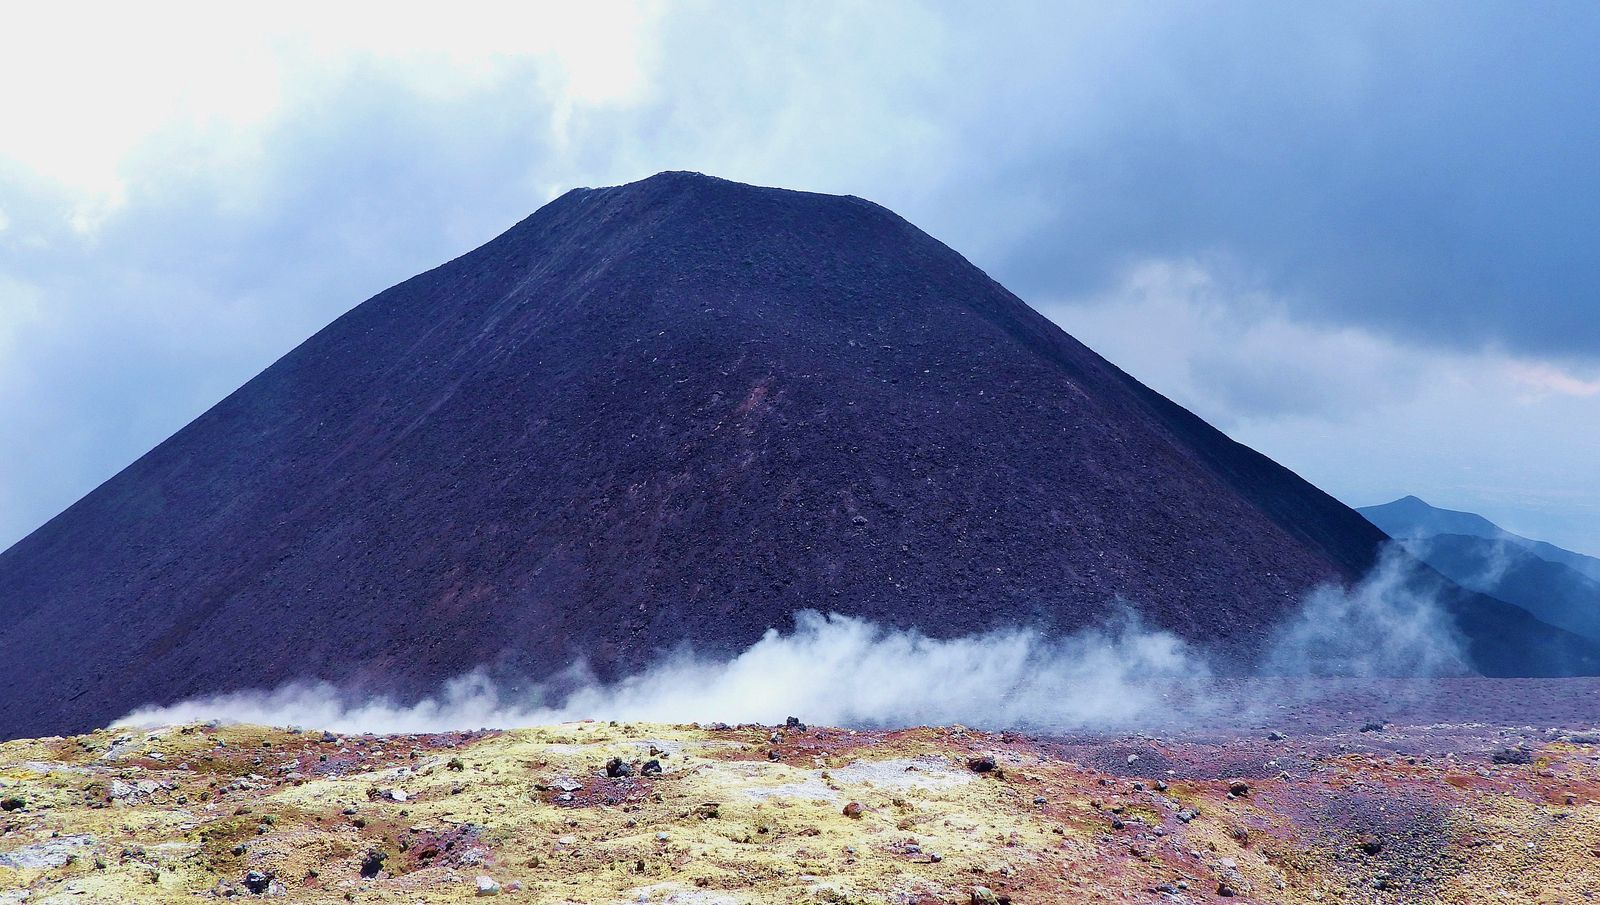 Etna - the south-eastern cone, the new summit of the volcano - photo by Boris Behncke on 07.22.2021 during a field visit